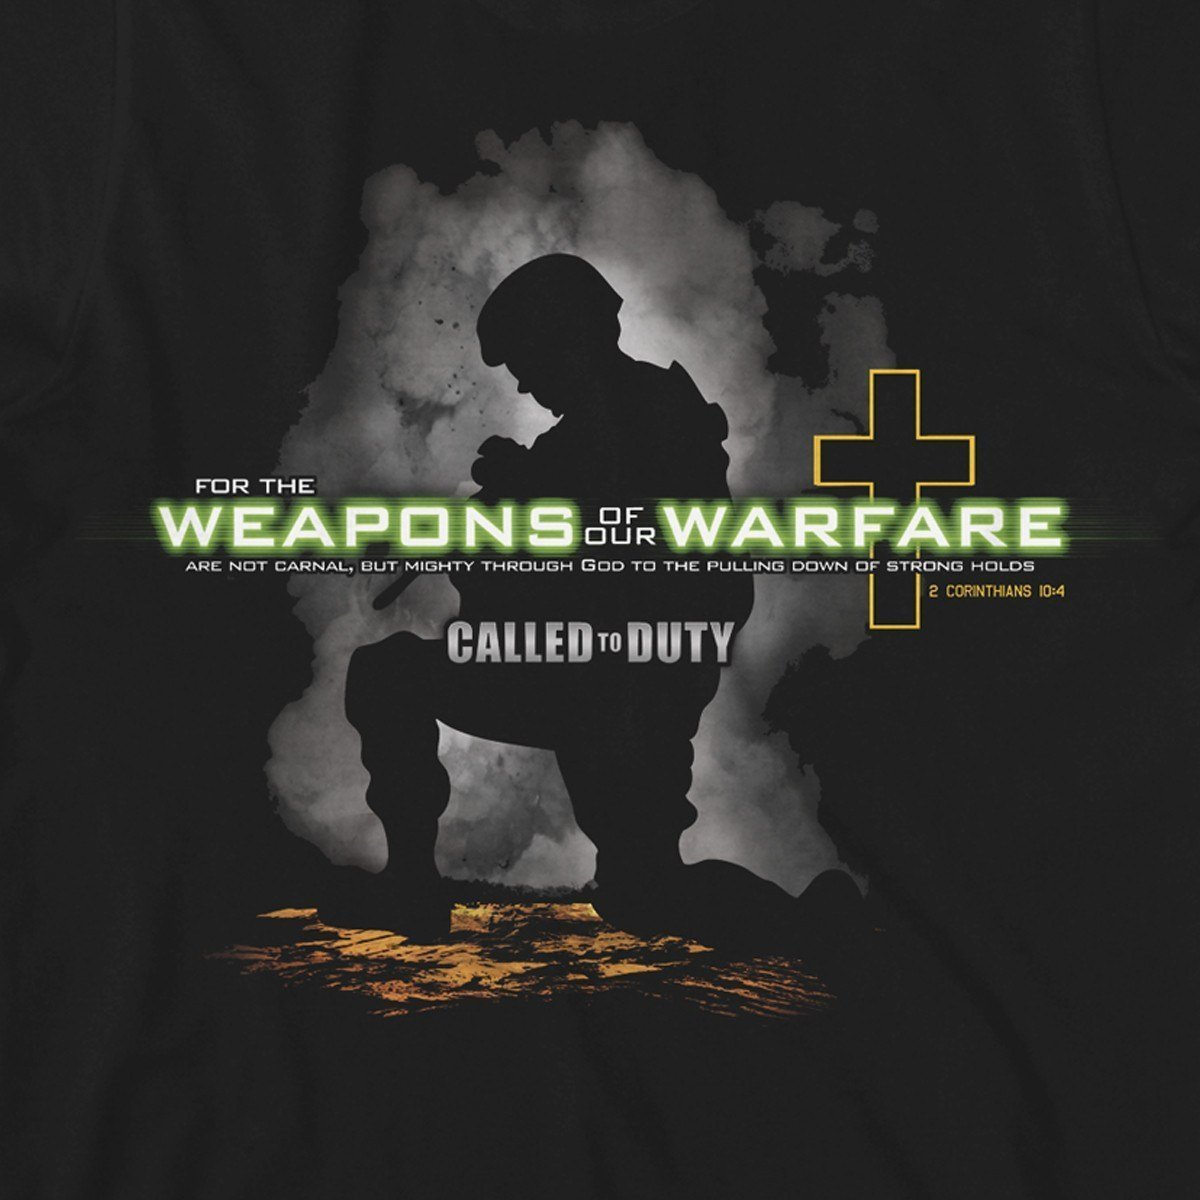 Weapons Of Our Warfare Christian T-Shirts ™